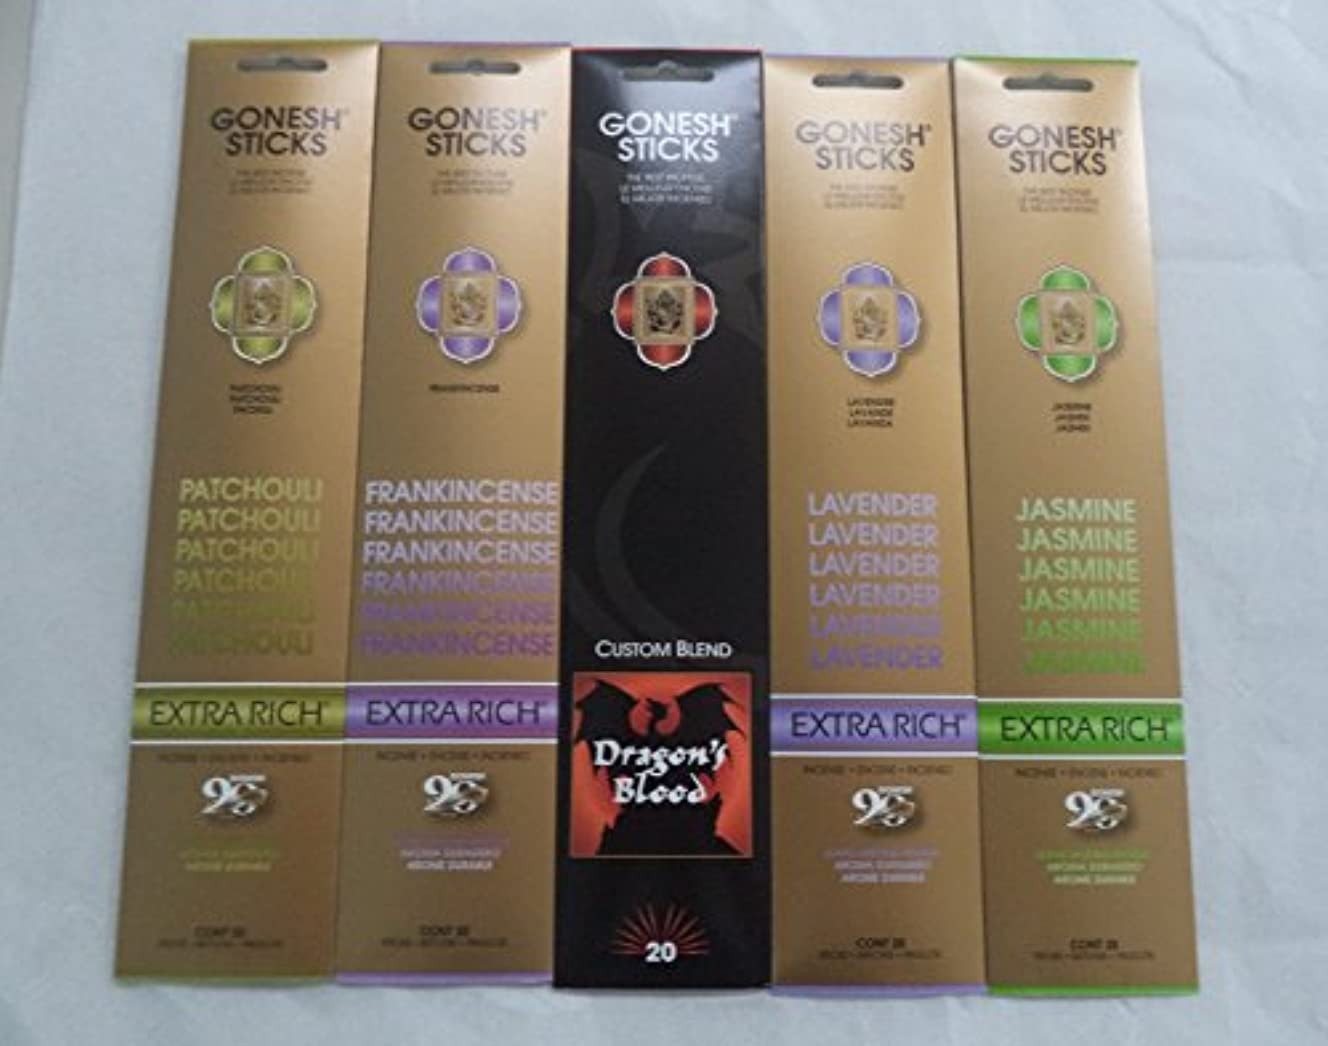 解明するステートメント楽しむGonesh Incense Stick Best SellerコンボVariety Set # 1 5 x 20 = 100 Sticks